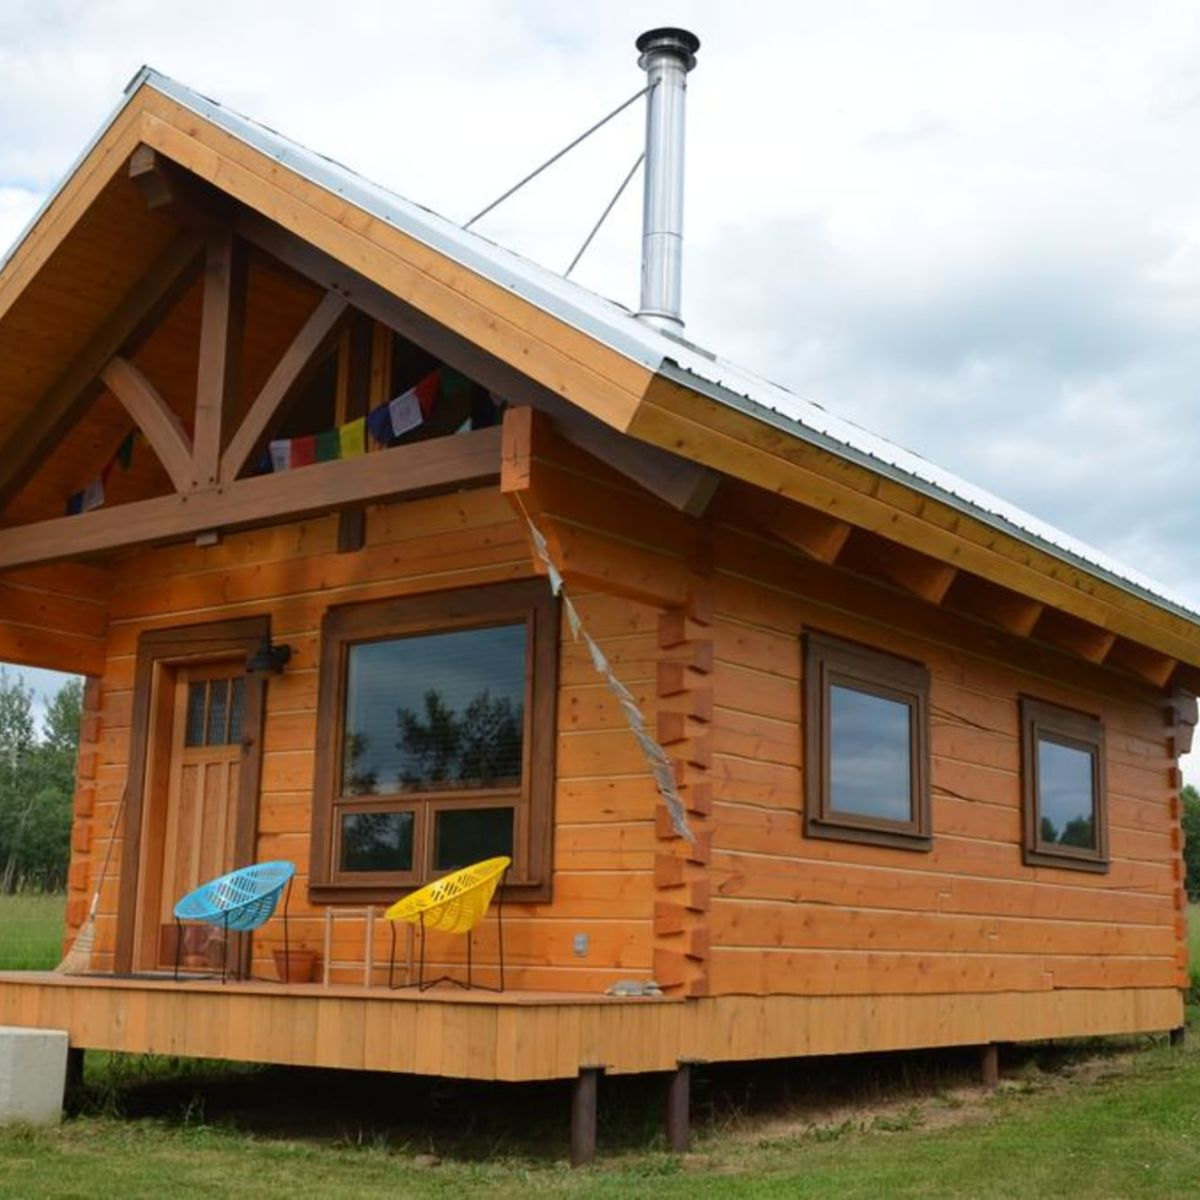 Adorable Log Cabin To Be Moved